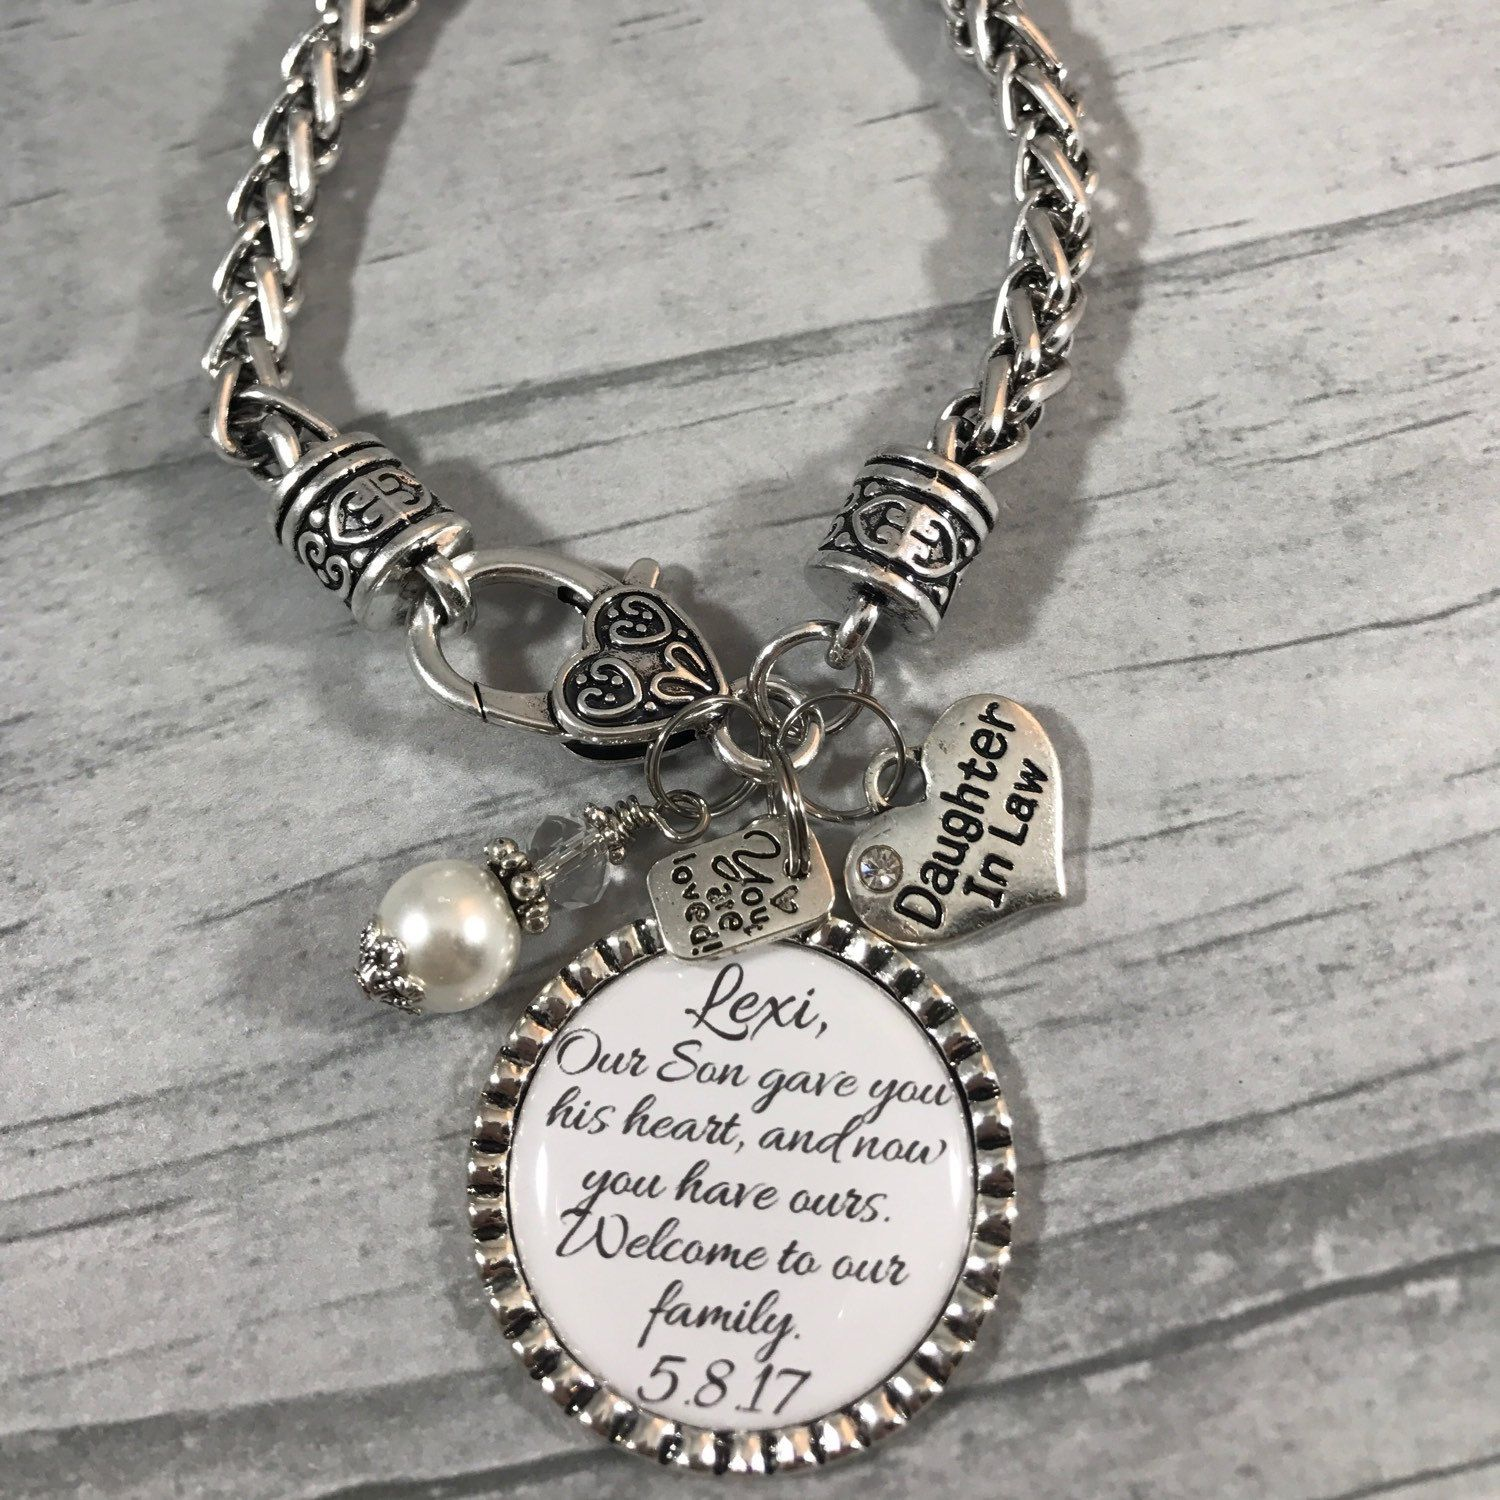 Daughter in law bracelet future daughter in law gift for